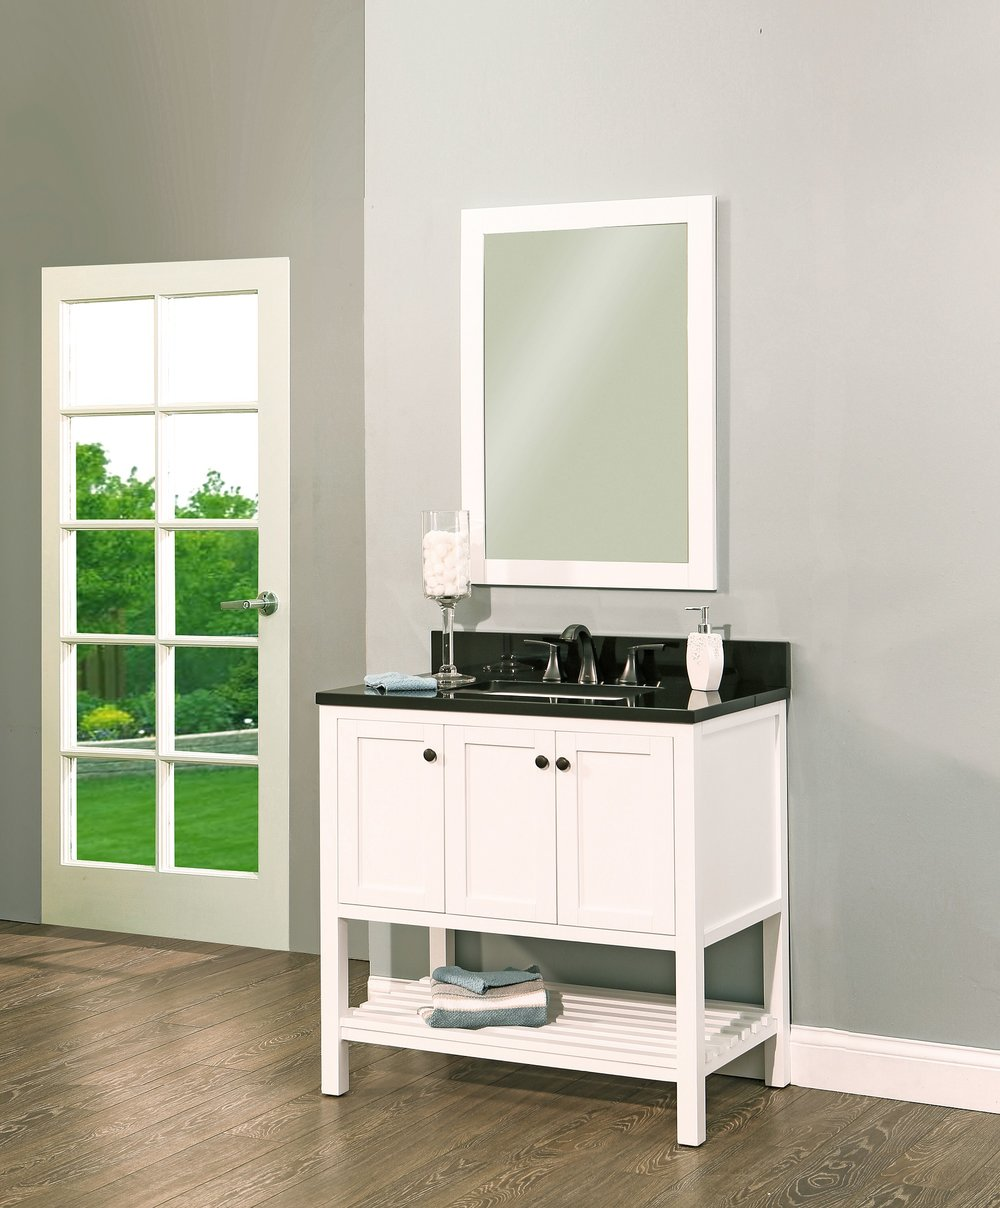 "hampton bay bathroom vanity set silky white, 36""     $999.00"